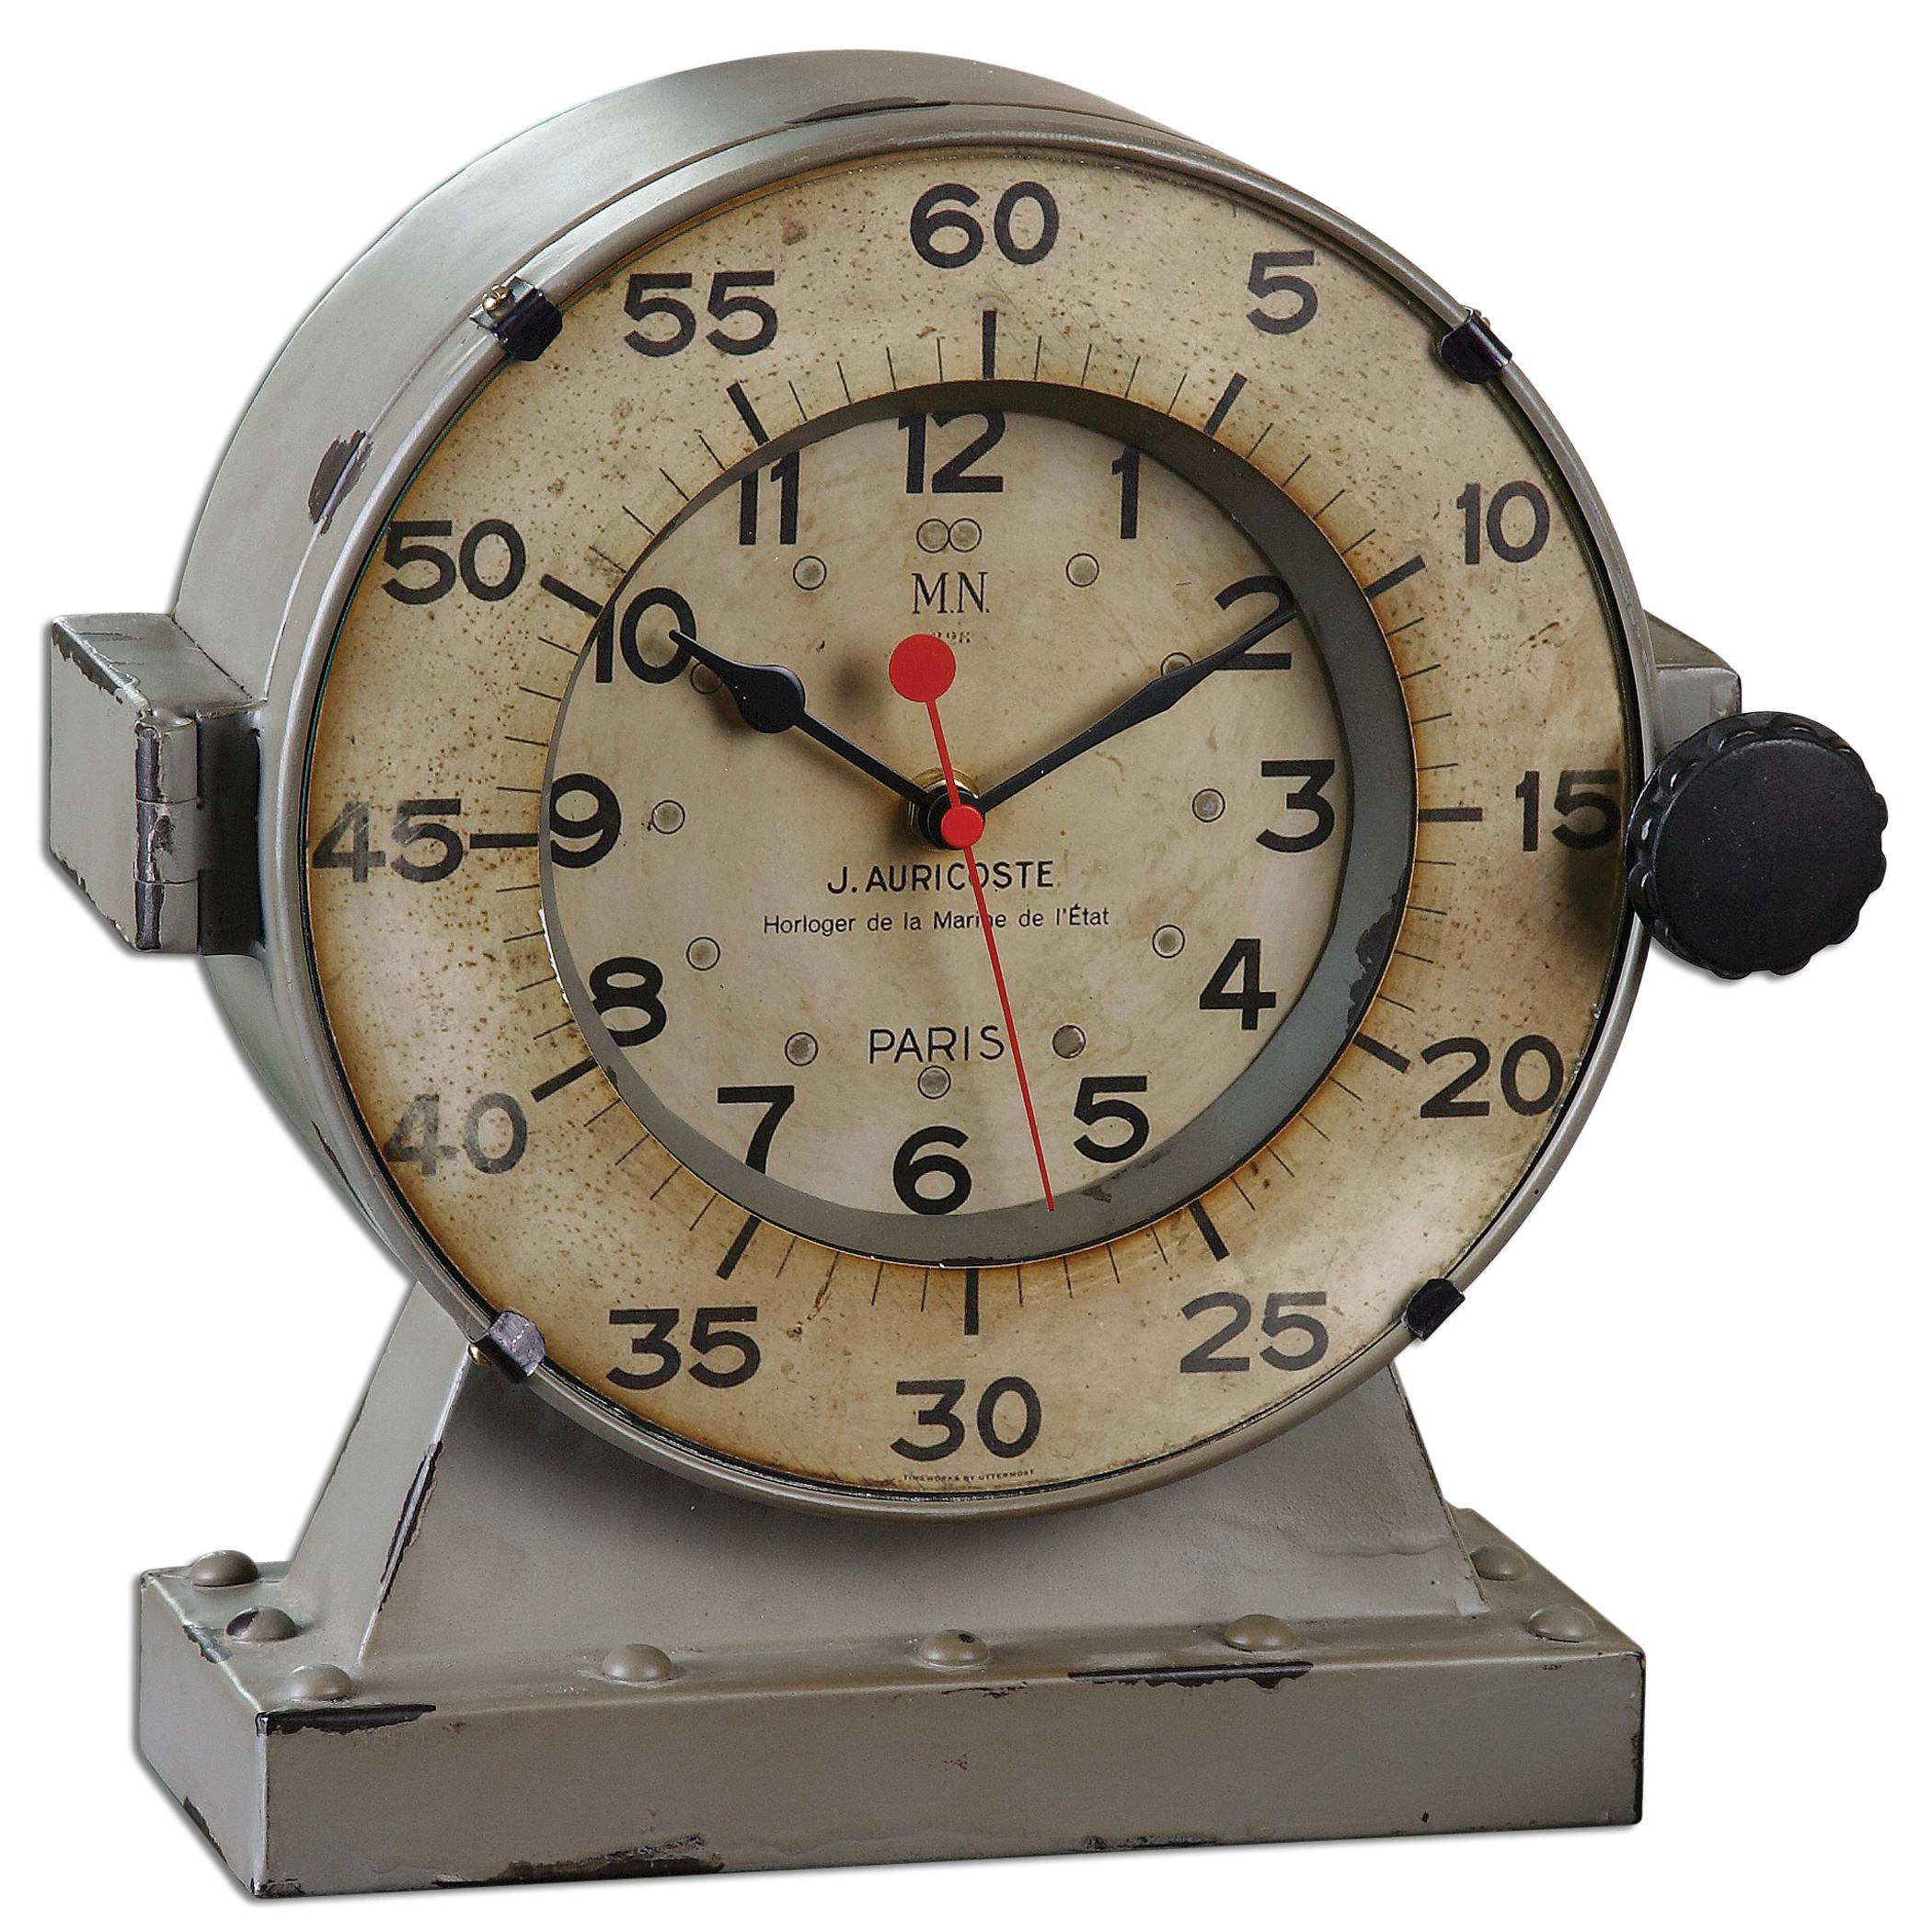 Uttermost Clocks Marine Table Clocks - Item Number: 06096